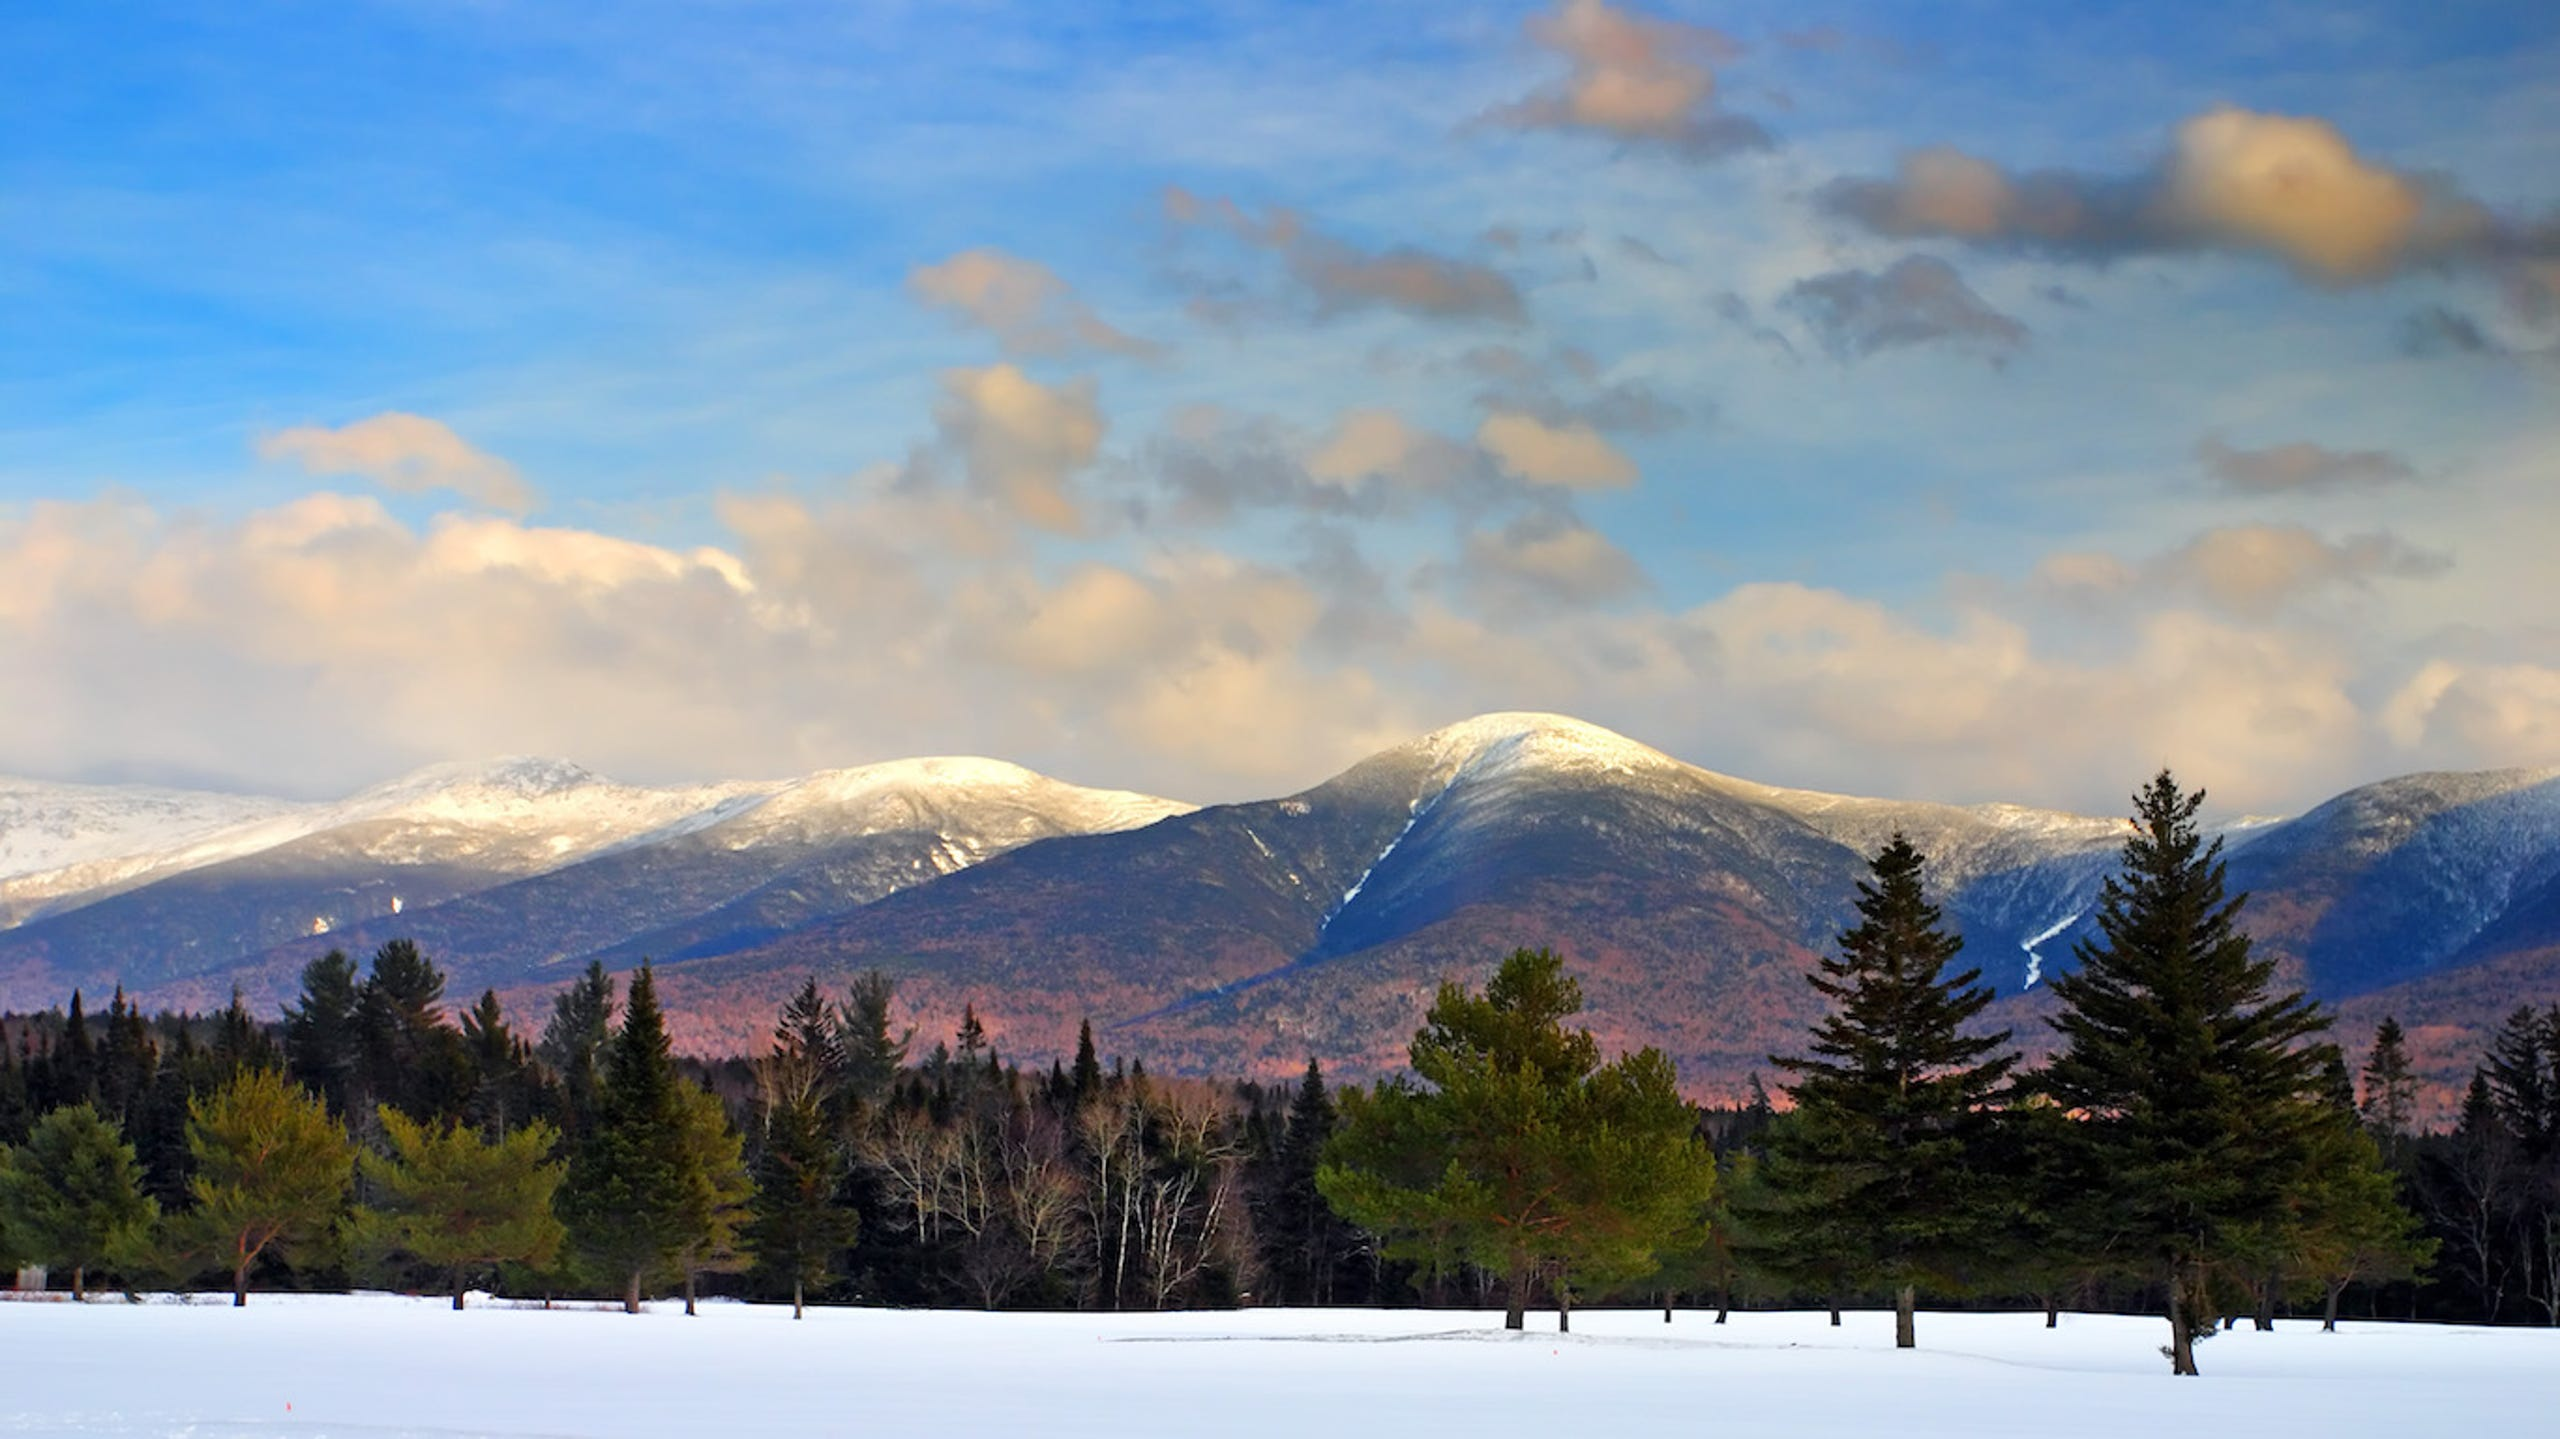 Bretton Woods, New Hampshire • Mount Washington is the highest peak in the northeastern United States at 6,288 feet, and the historic Mount Washington Cog Railway is the best way to summit the mountain. The train ride is three hours round trip, bringing you up to a fantastic view. Nearby Bretton Woods offers resort lodging, restaurants and numerous opportunities for outdoor adventures, including rock climbing, mountain biking and hiking.